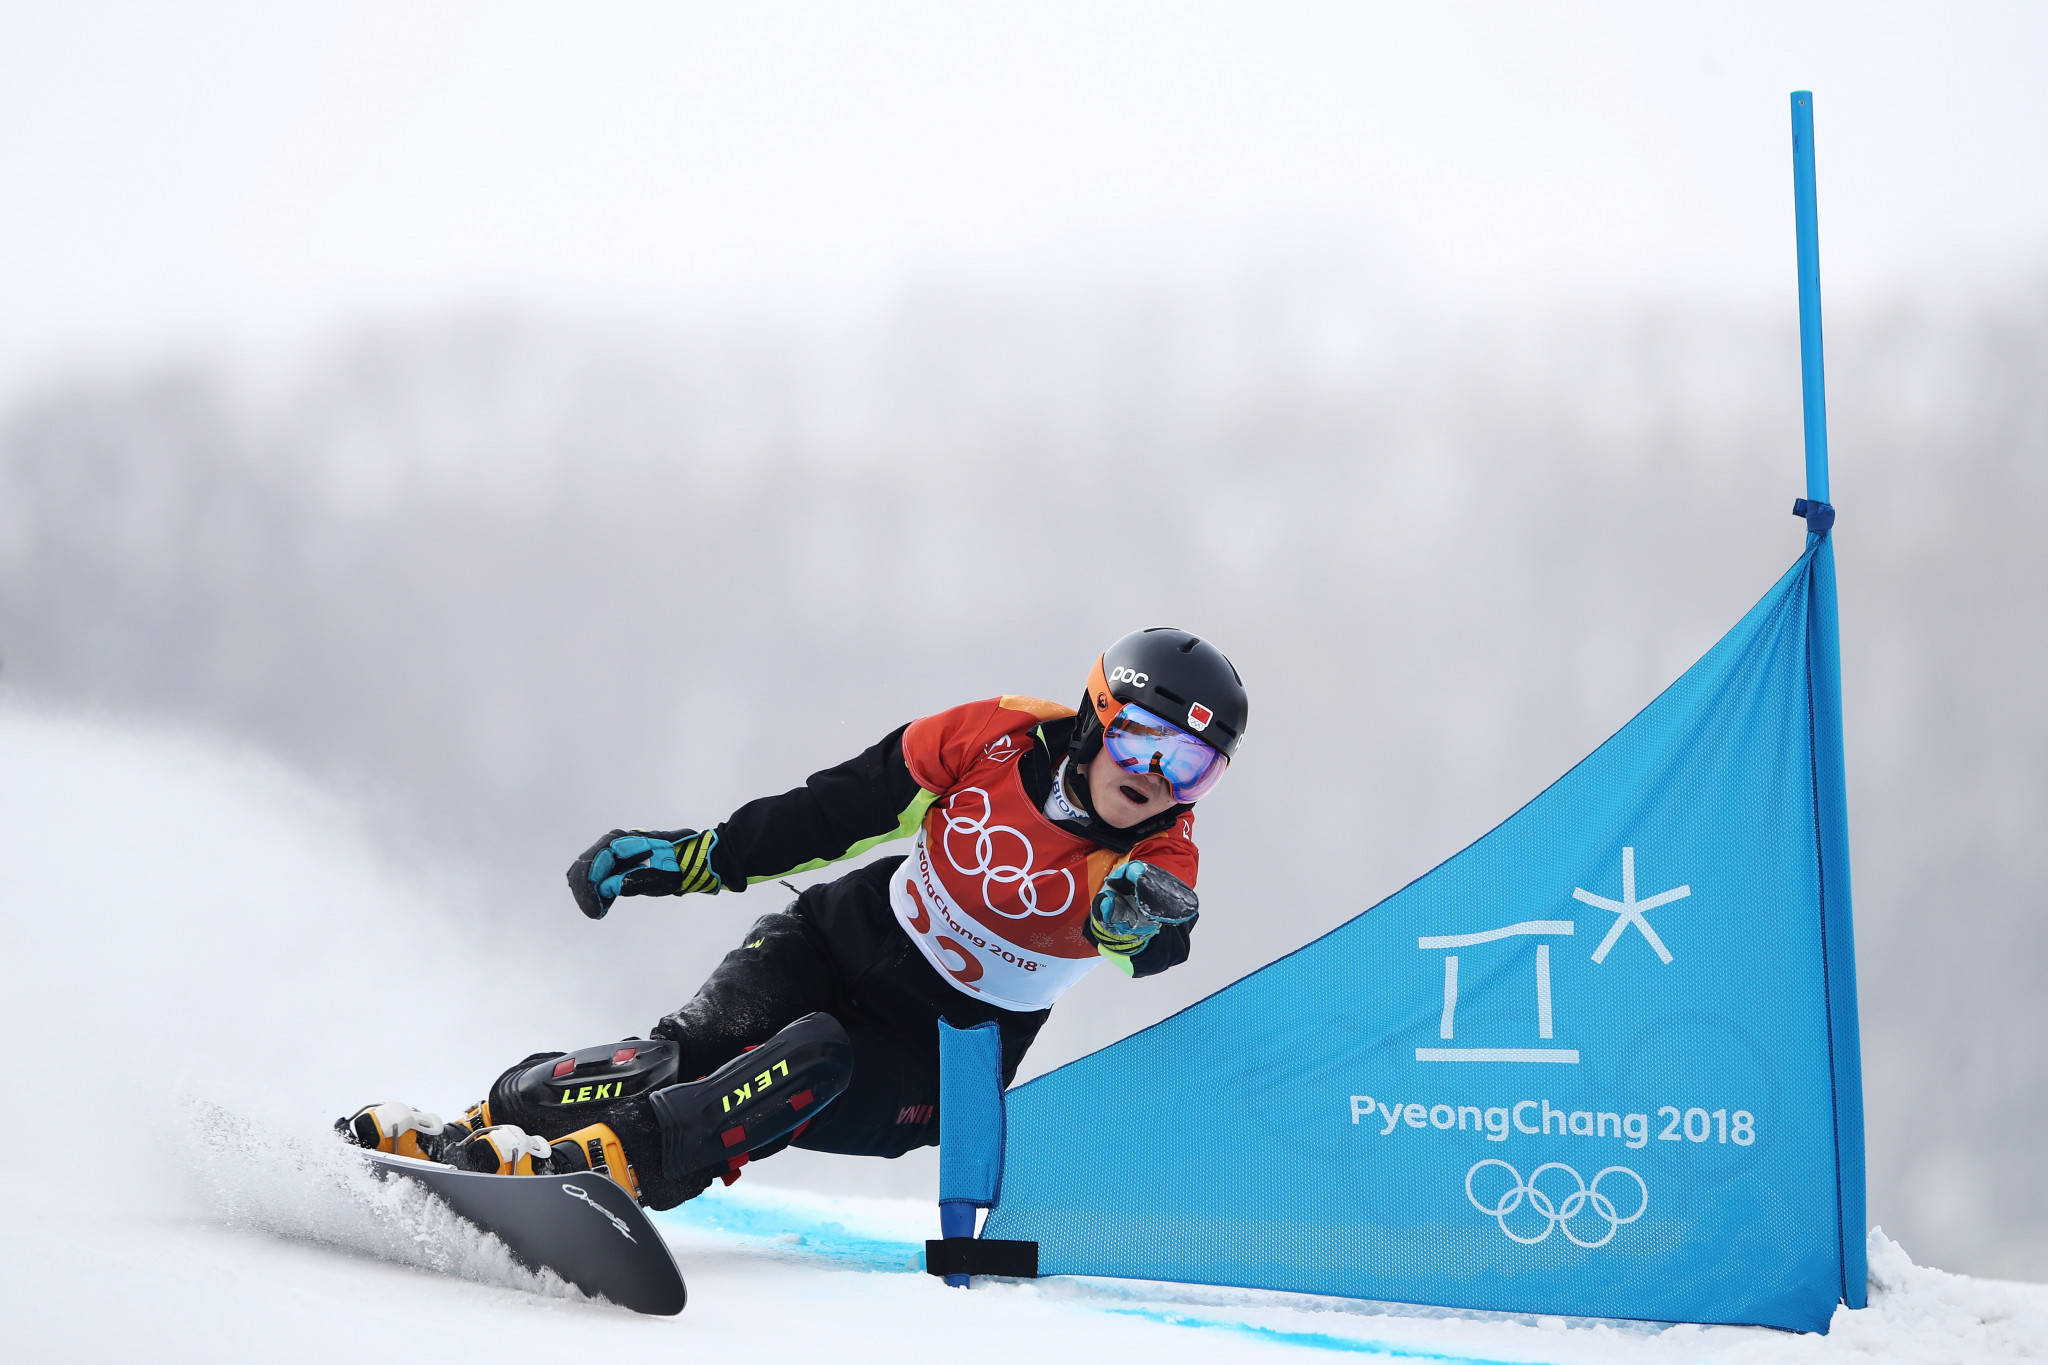 Gong hands hosts early Beijing 2022 boost with maiden FIS Alpine Snowboard World Cup victory in Chongli